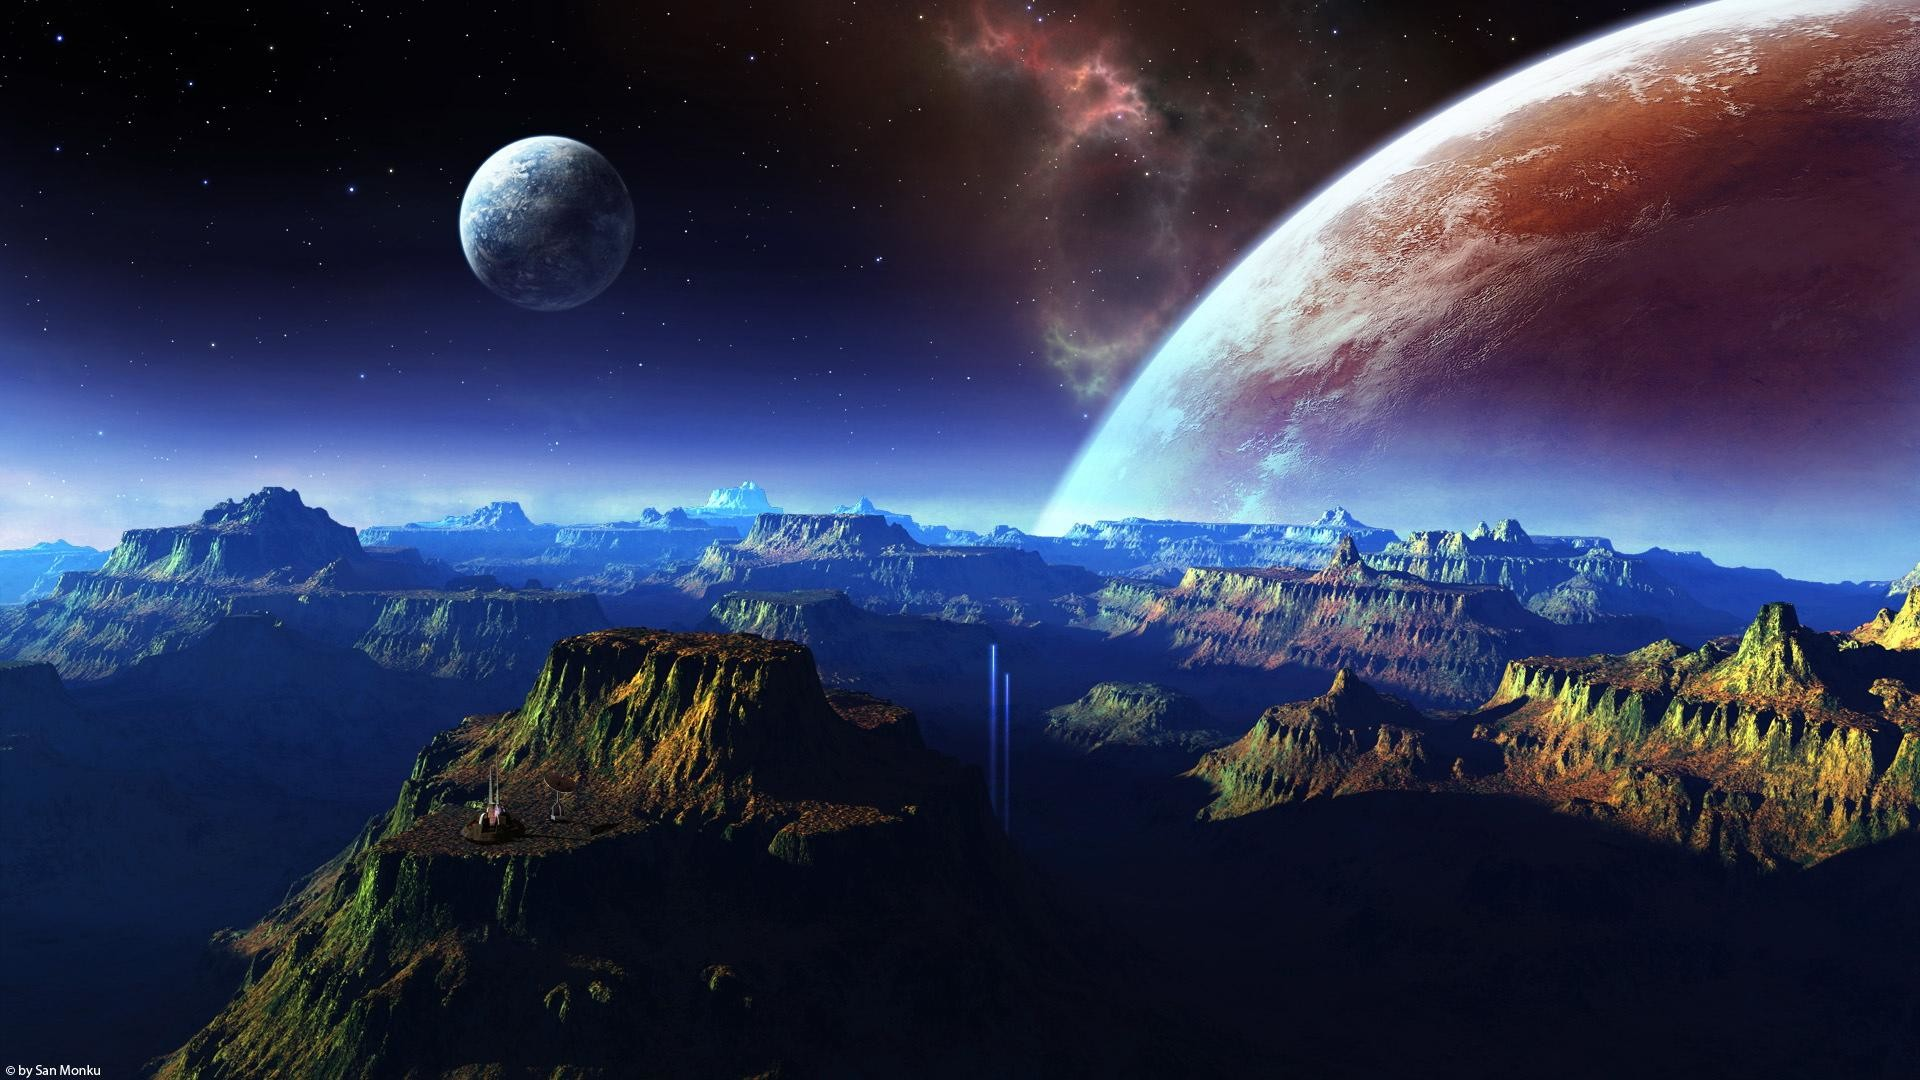 1920x1080 Earth Space HD Wallpaper 1920X1080 Page 3